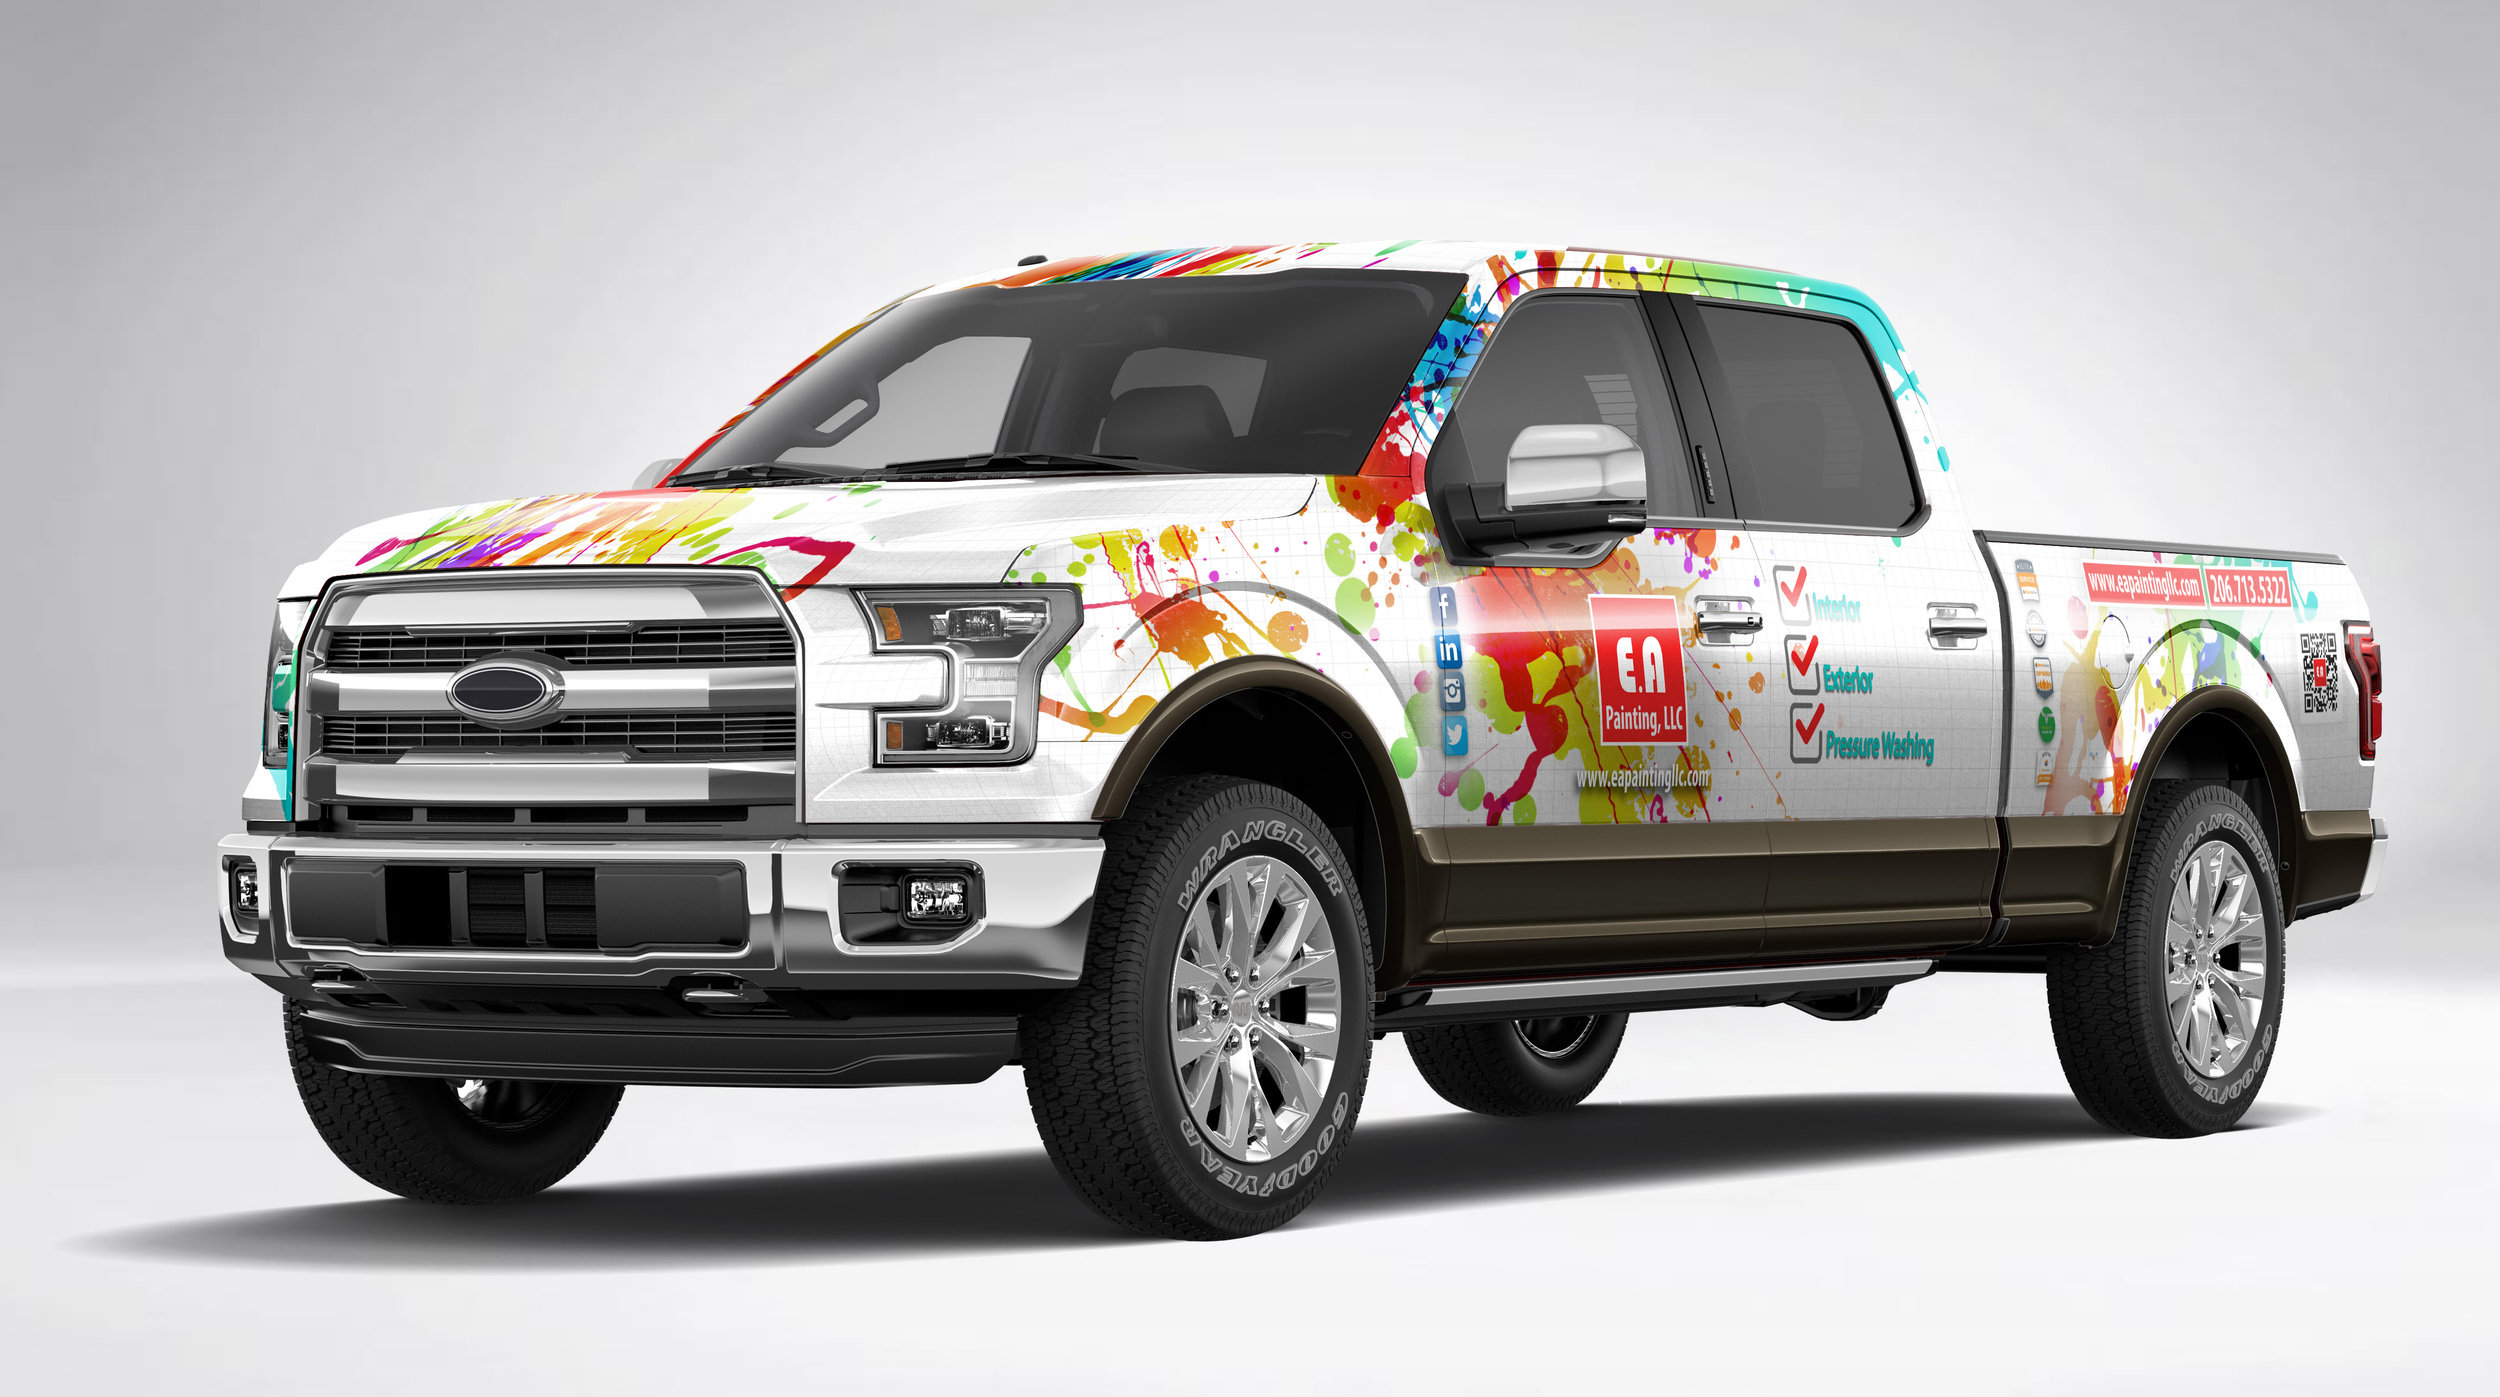 Final White Truck Design_front - Copy.jpg